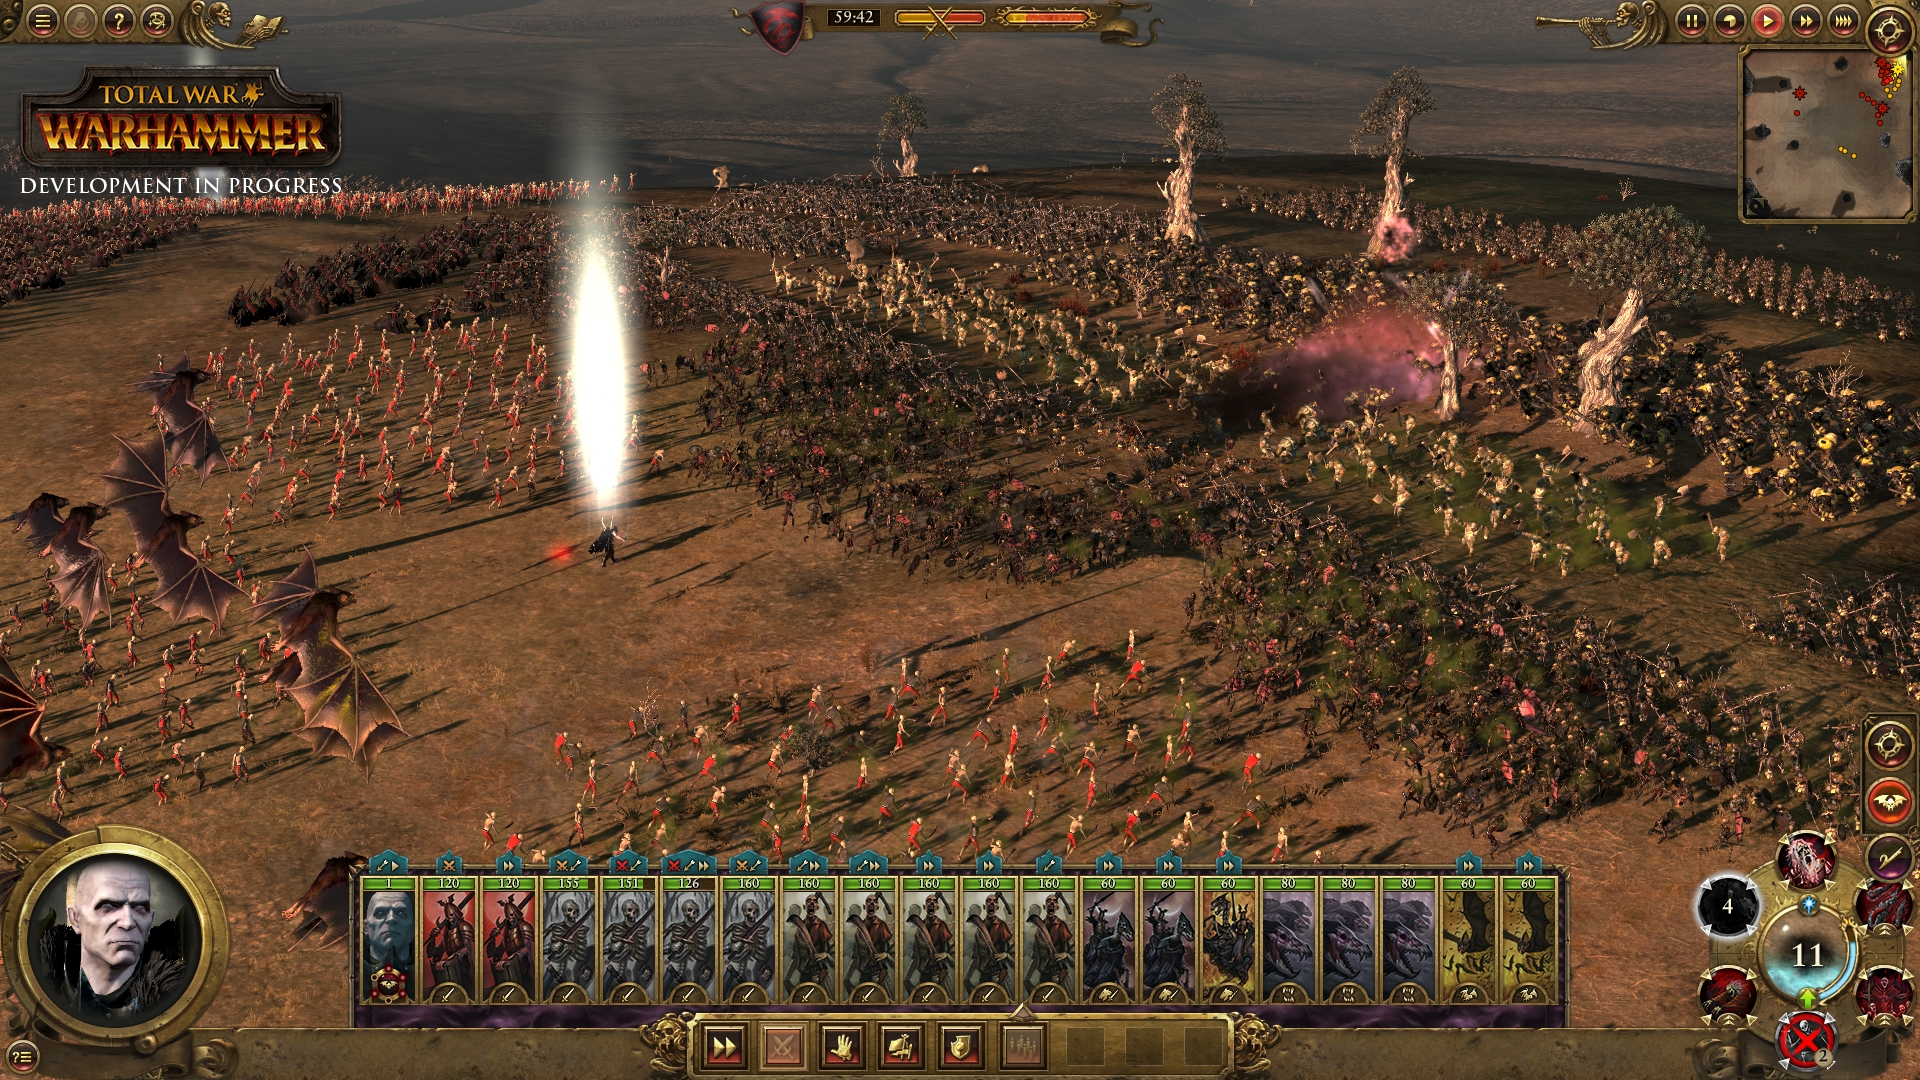 Total War: Warhammer - and this isnu0026#39;t even a particularly big battle